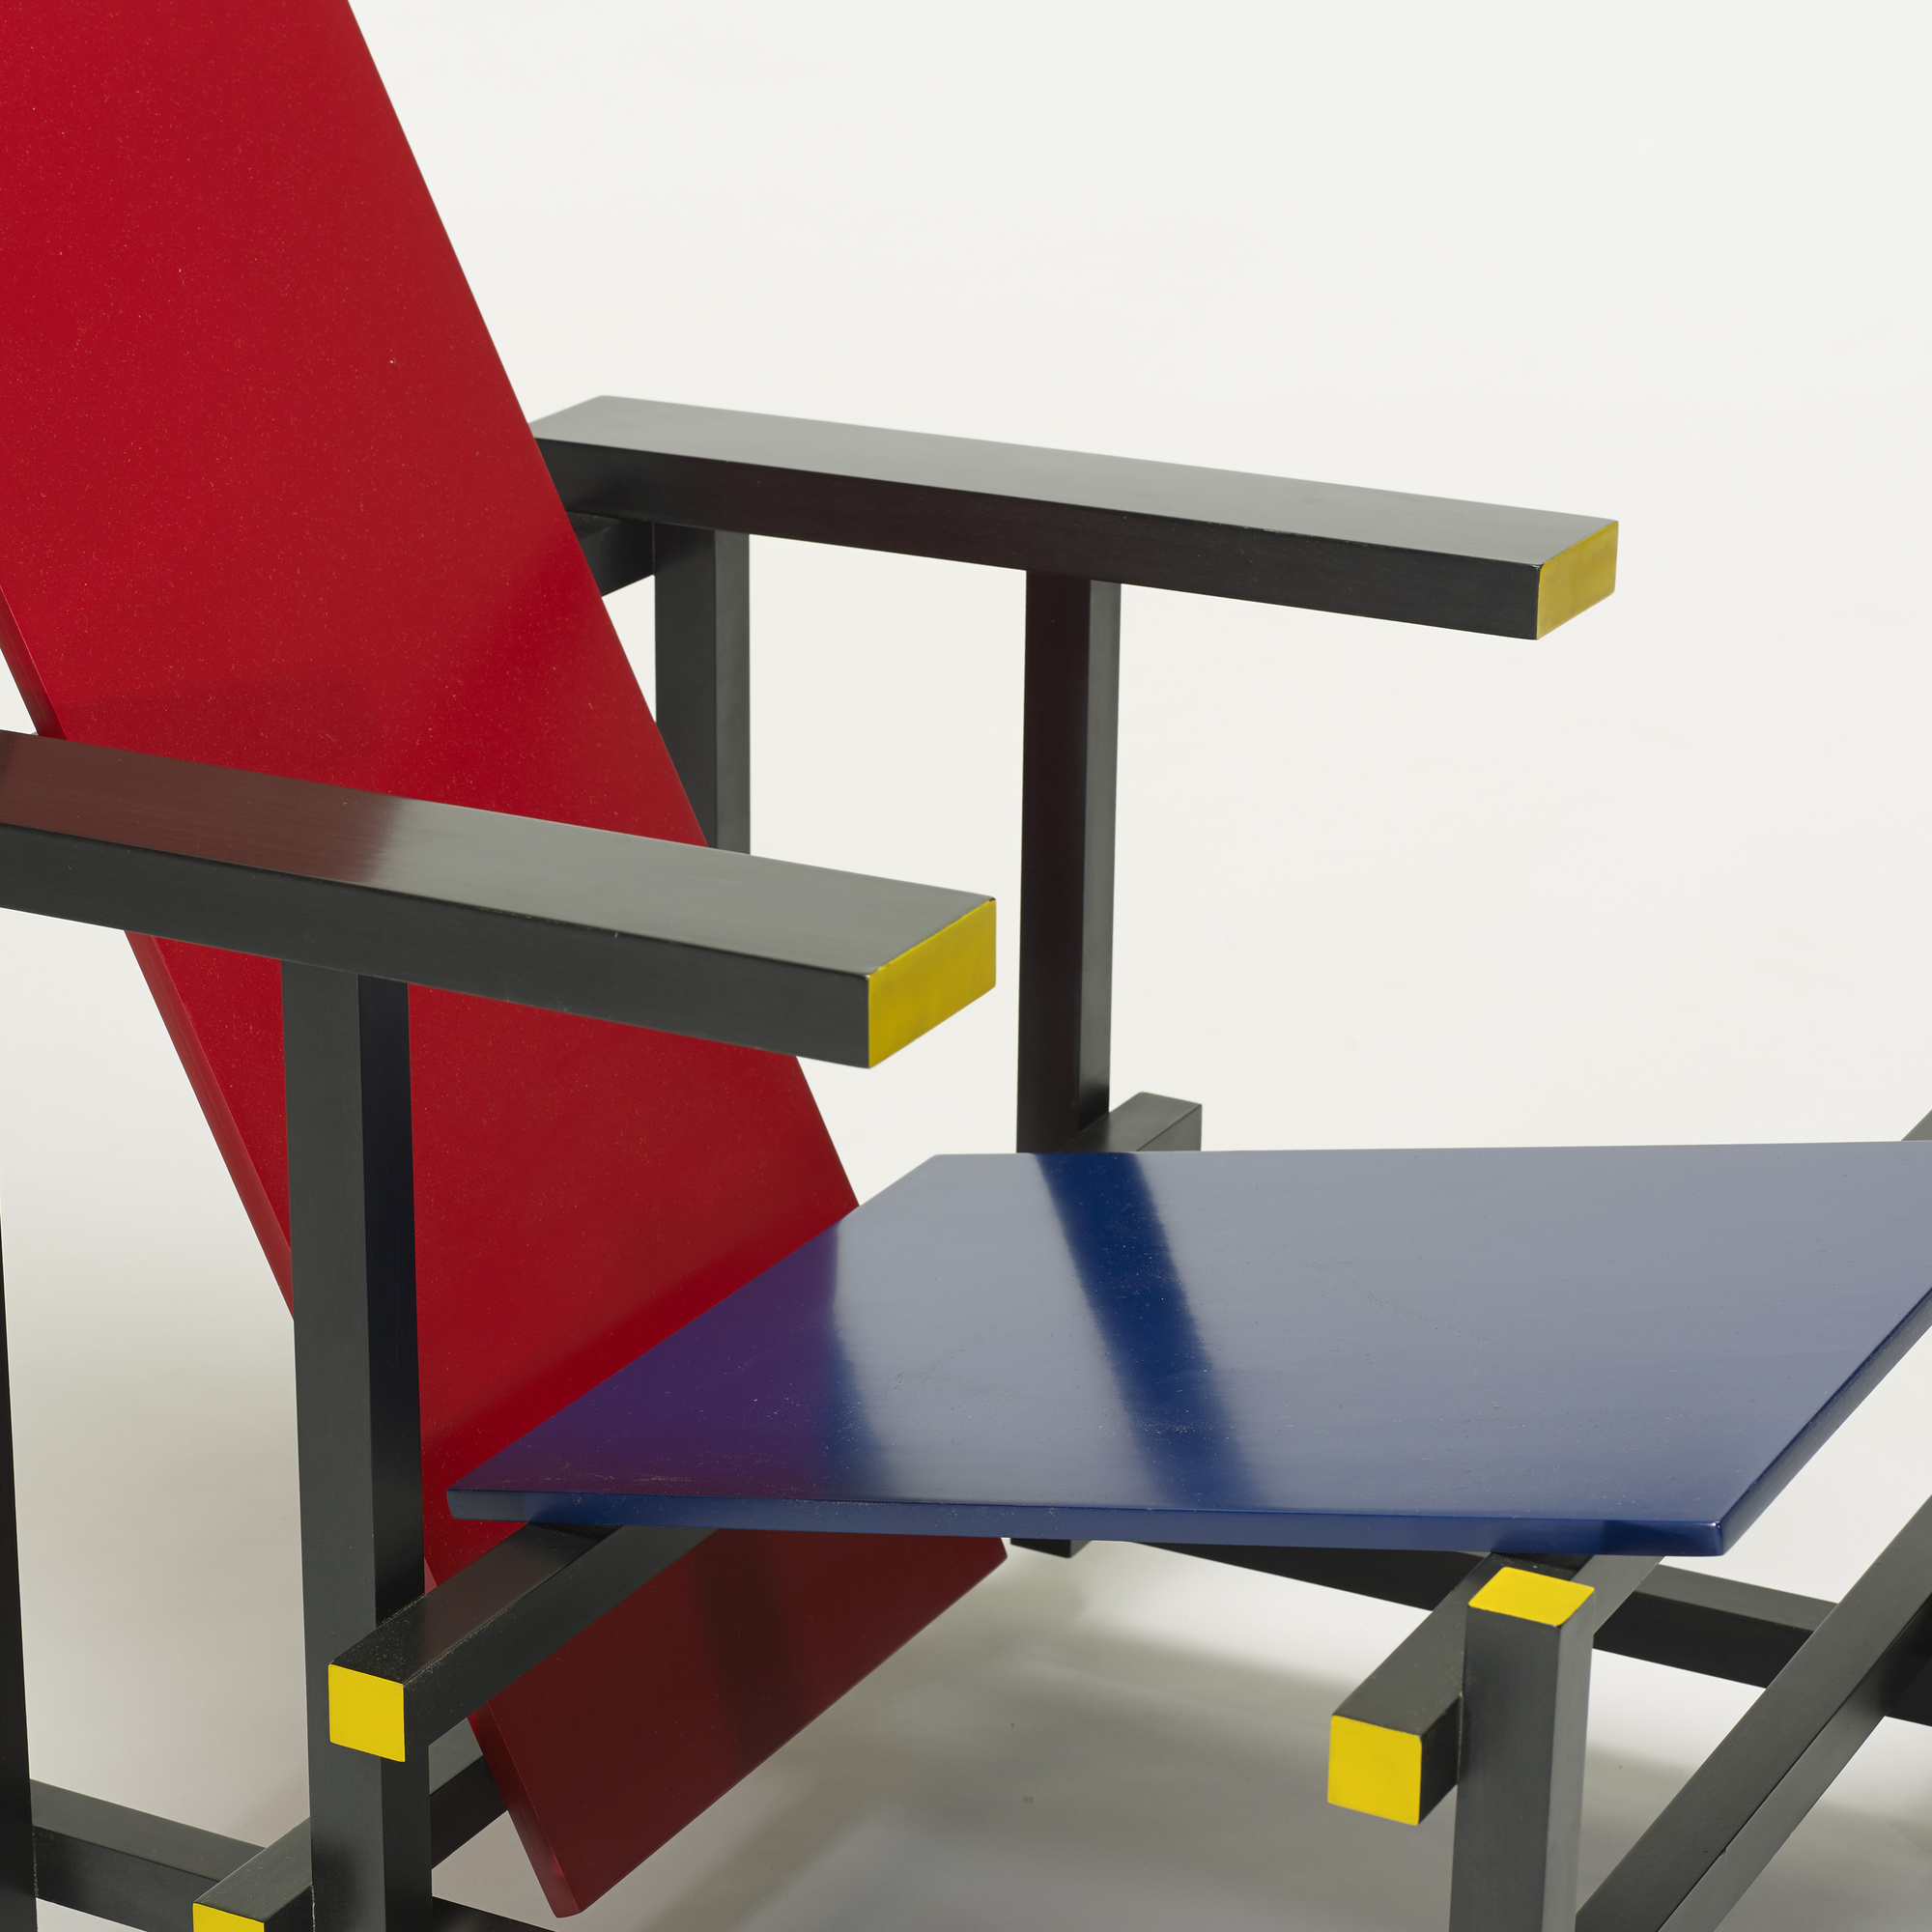 380: Gerrit Rietveld / Red Blue chair (3 of 3)